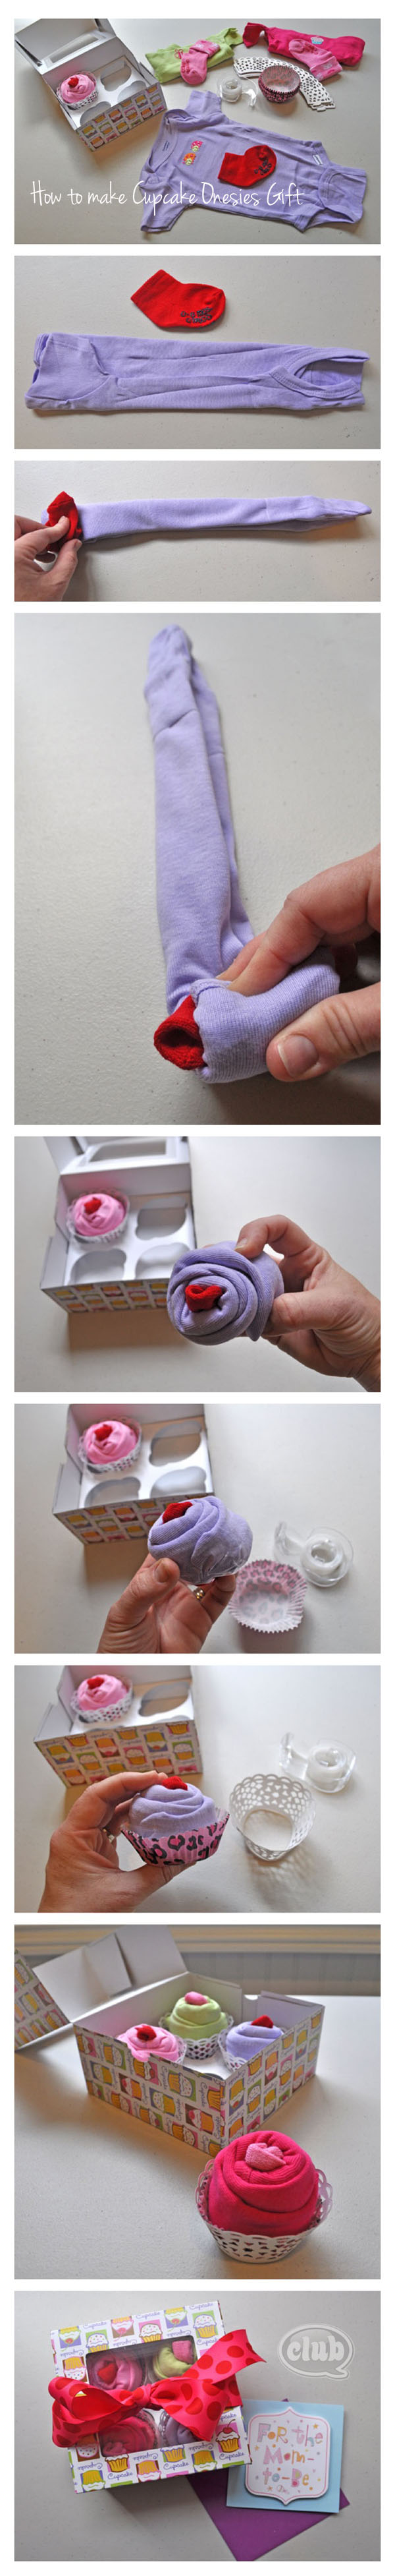 cupcake-baby-gift-steps